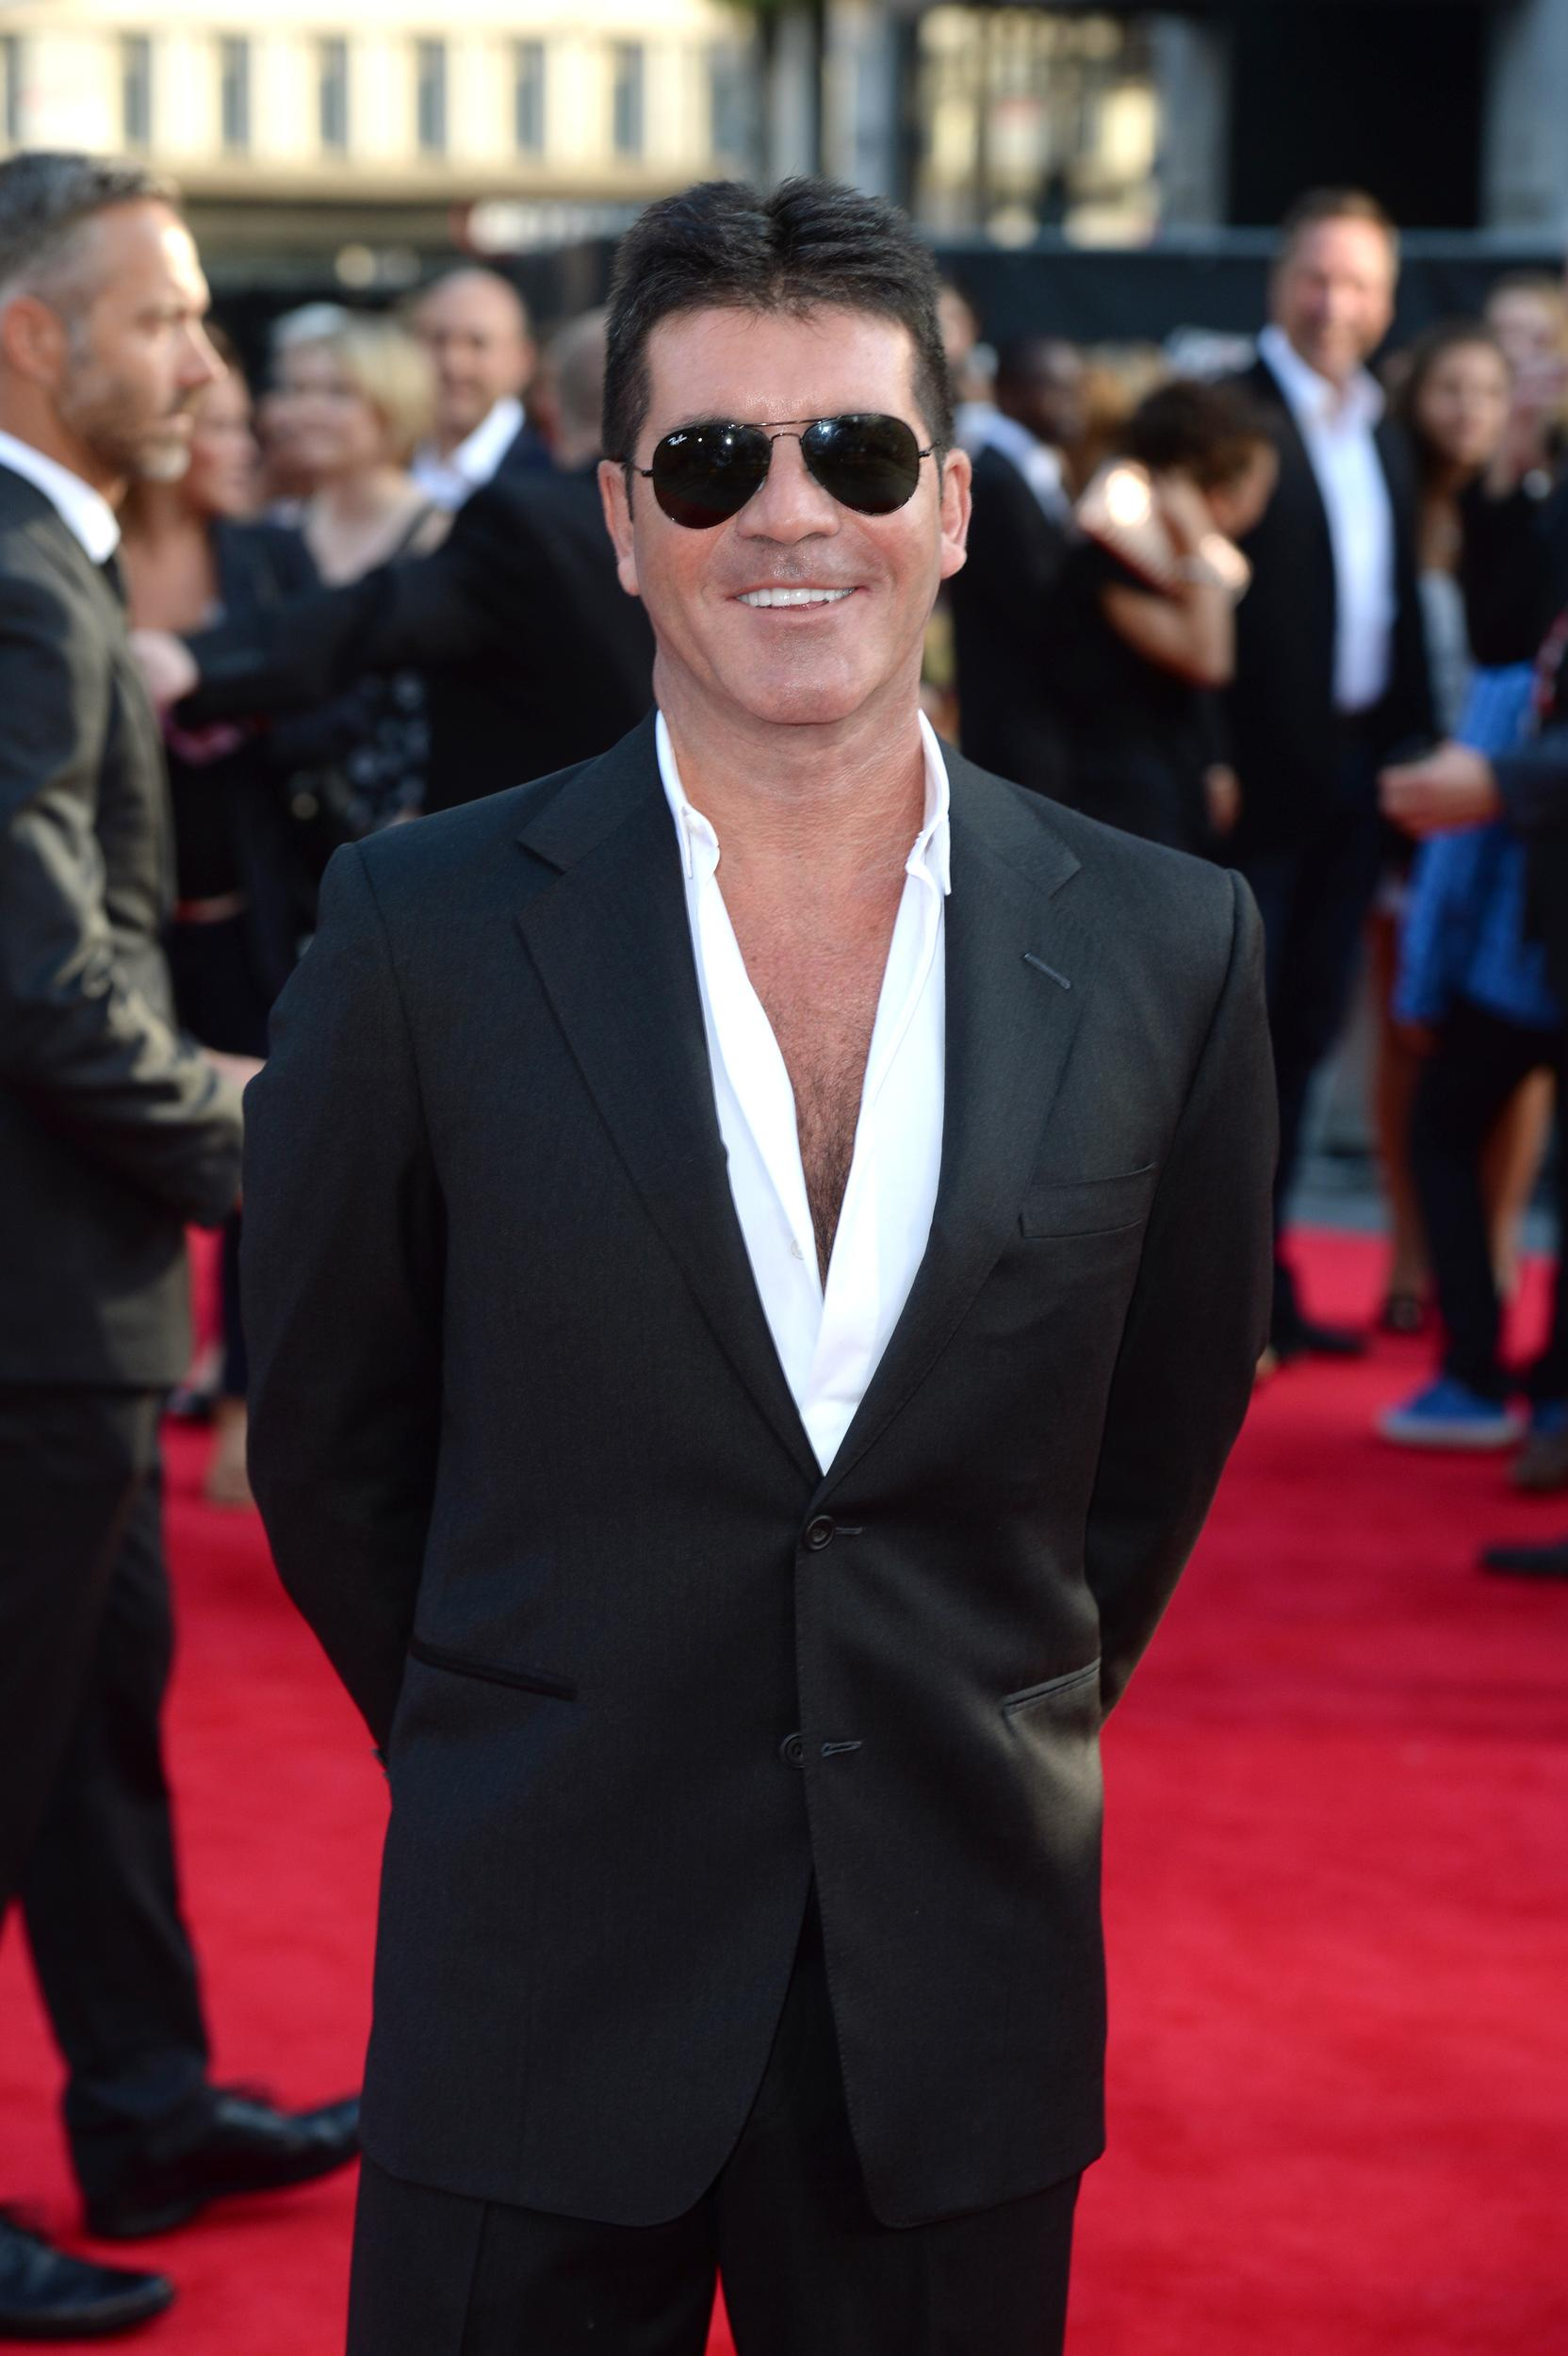 Simon Cowell, the second Brit on the list, is still holding fast to his earning power - despite some ratings problems in the US. The X Factor and Got Talent format are worldwide sensations - all earning a small fortune for the TV mogul and soon-to-be father who brought home $95 million in a year. It has pushed him up from tenth place in the list last year - leapfrogging the likes of James Patterson and Michael Bay.